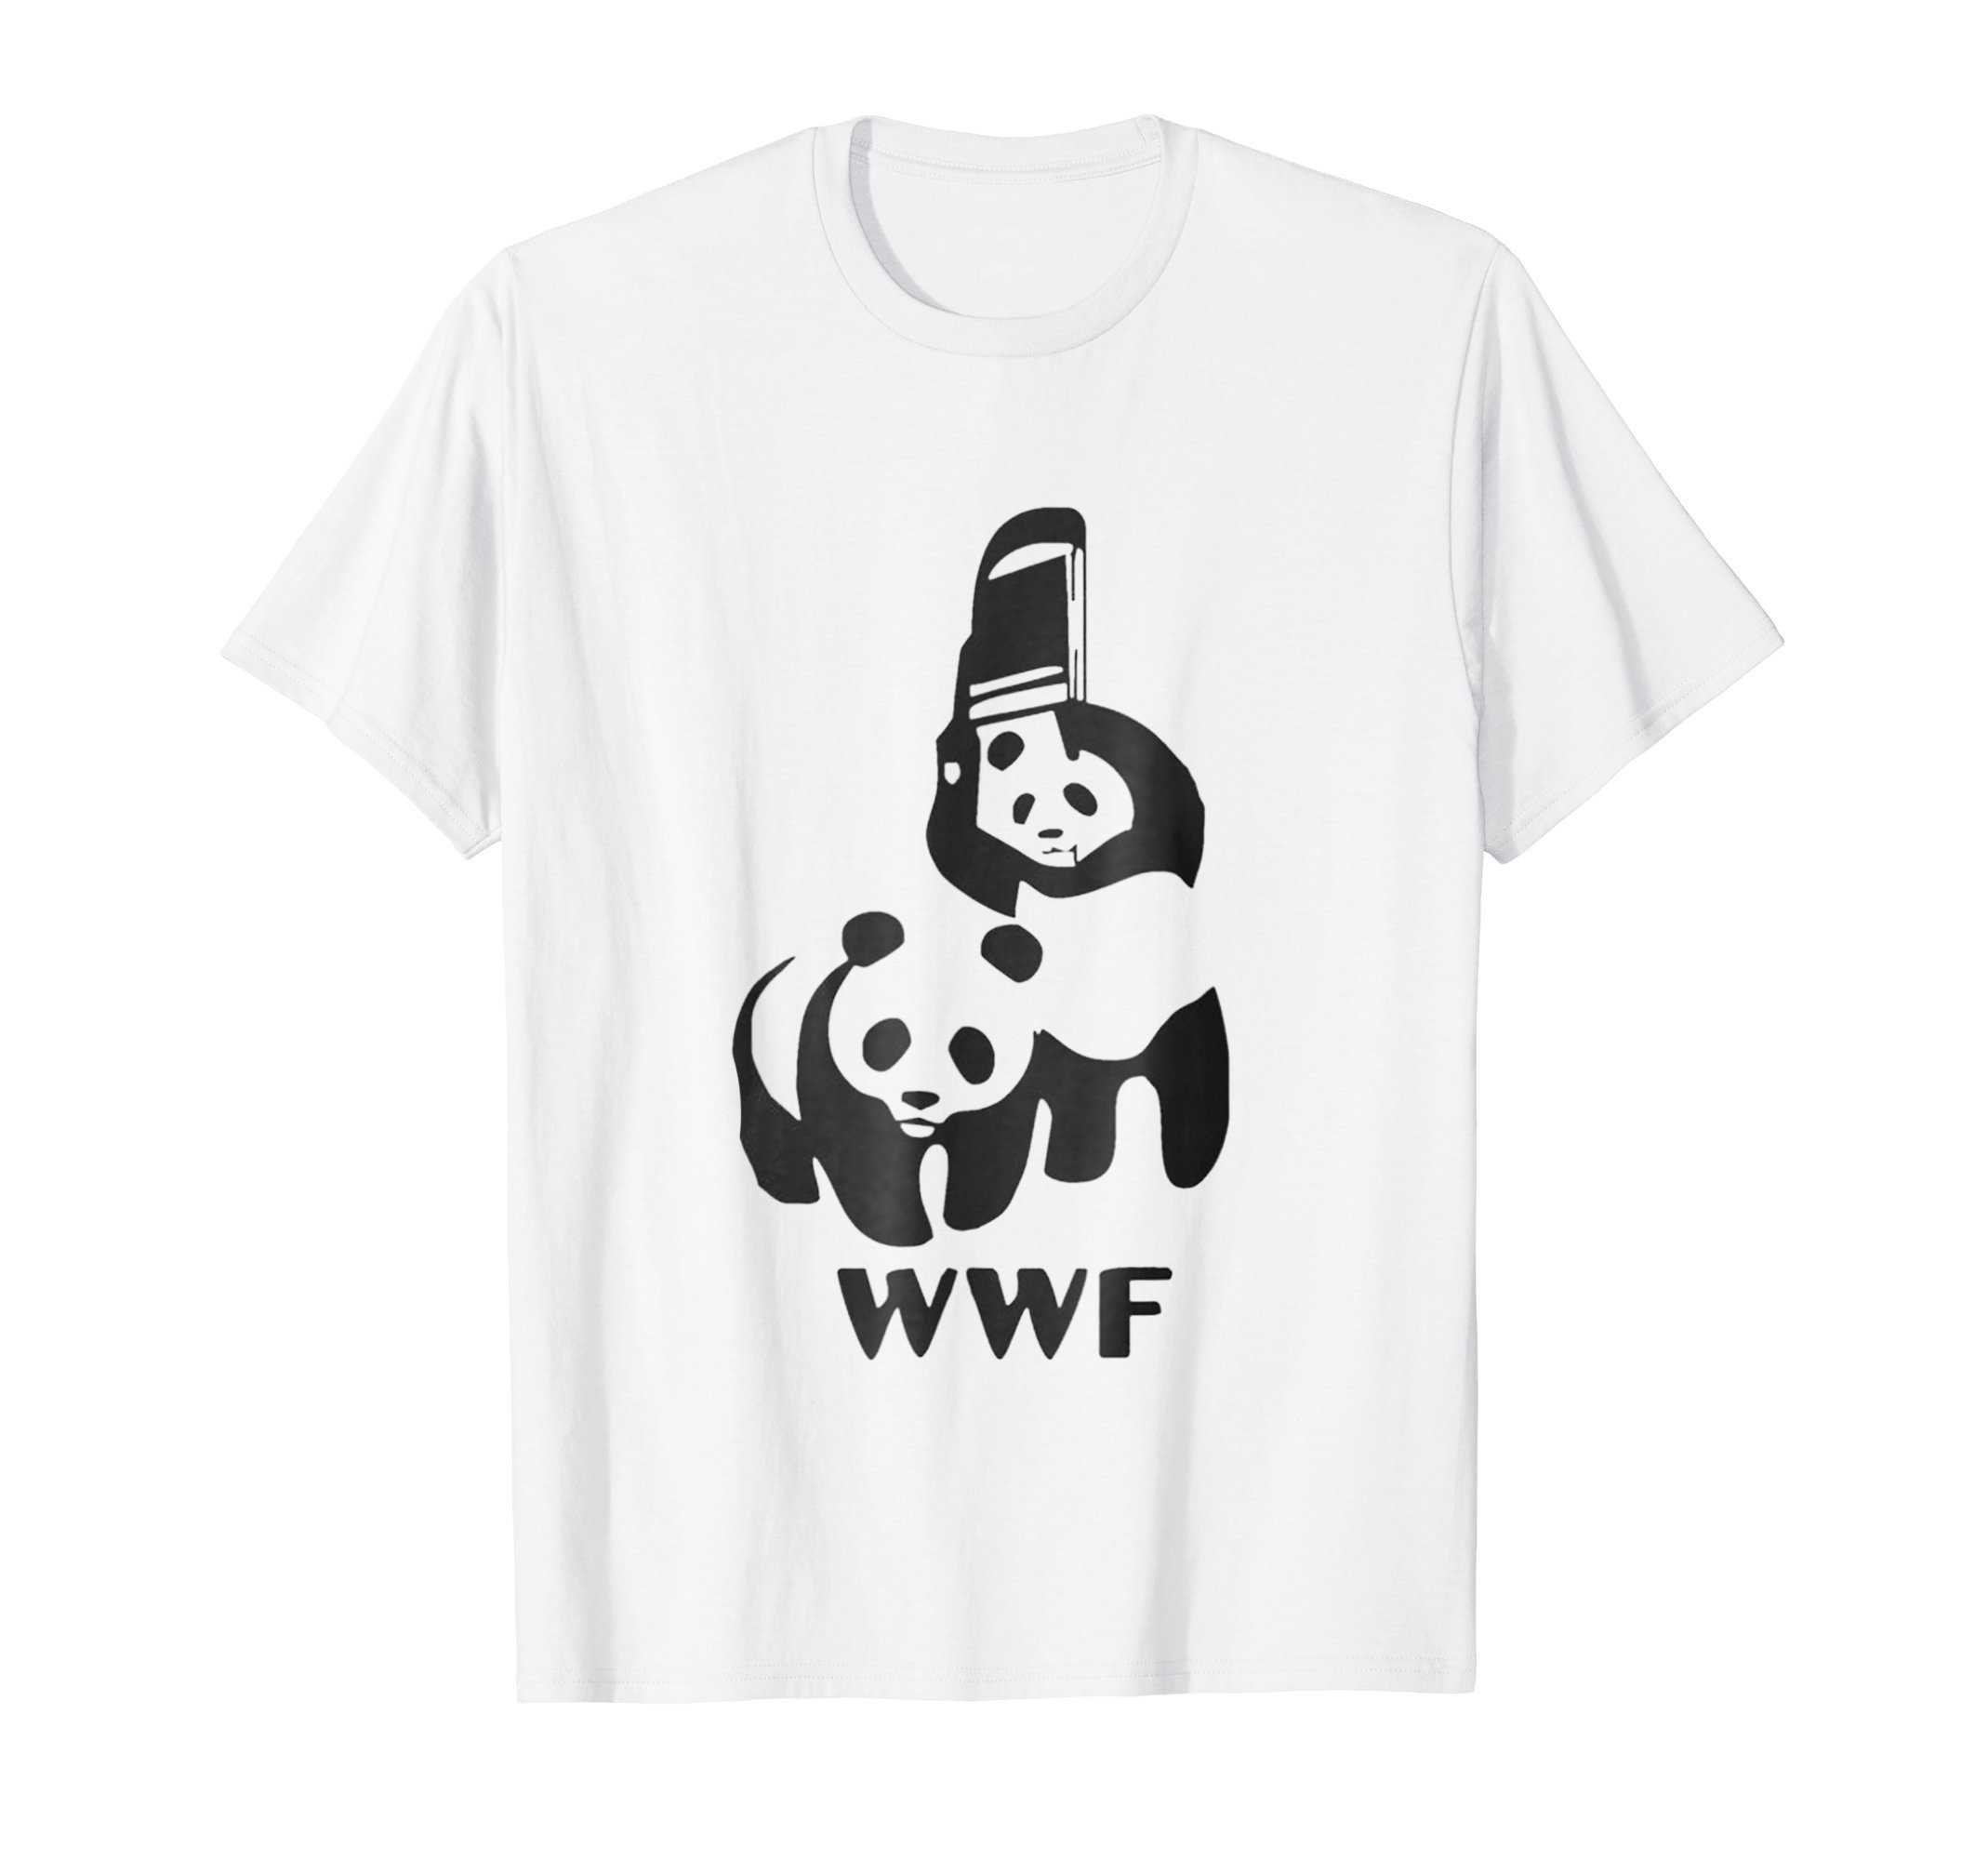 Panda Bear Wrestling t-shirt by bR FUNNY T-SHIRT